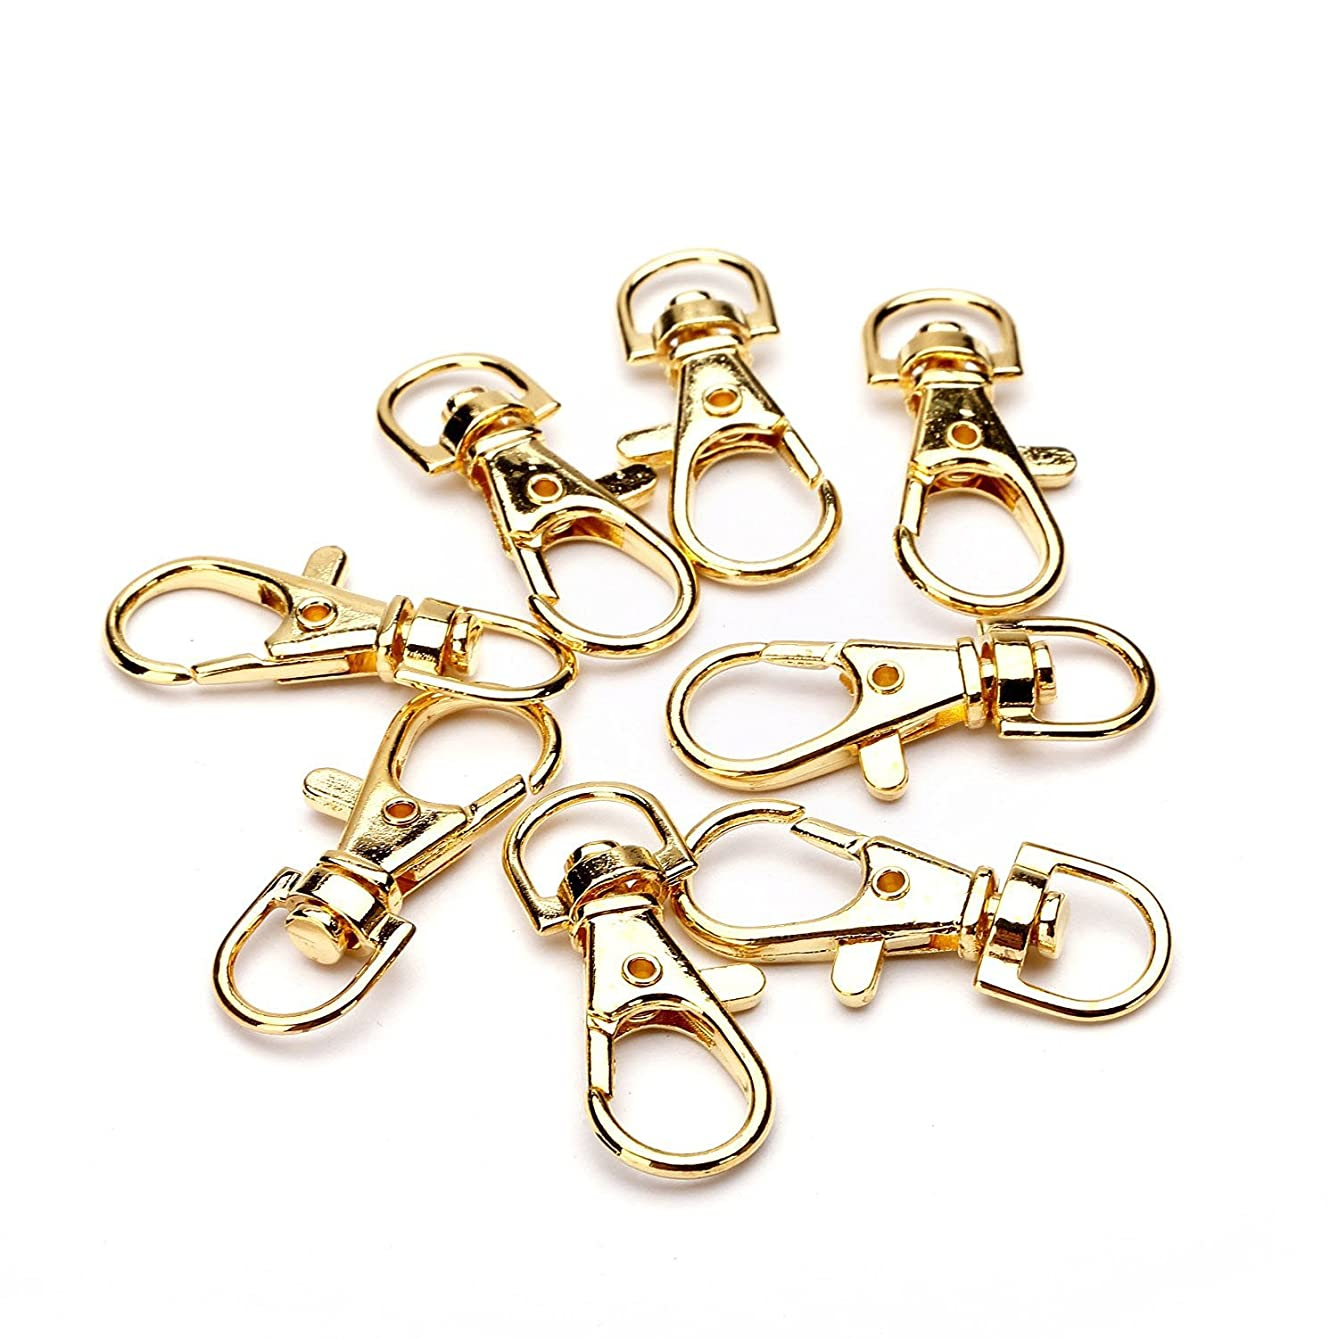 Coolrunner Chrome Color Swivel Eye Lobster Snap Clasp Hook for Key Ring 38x16mm 30pcs (Gold)